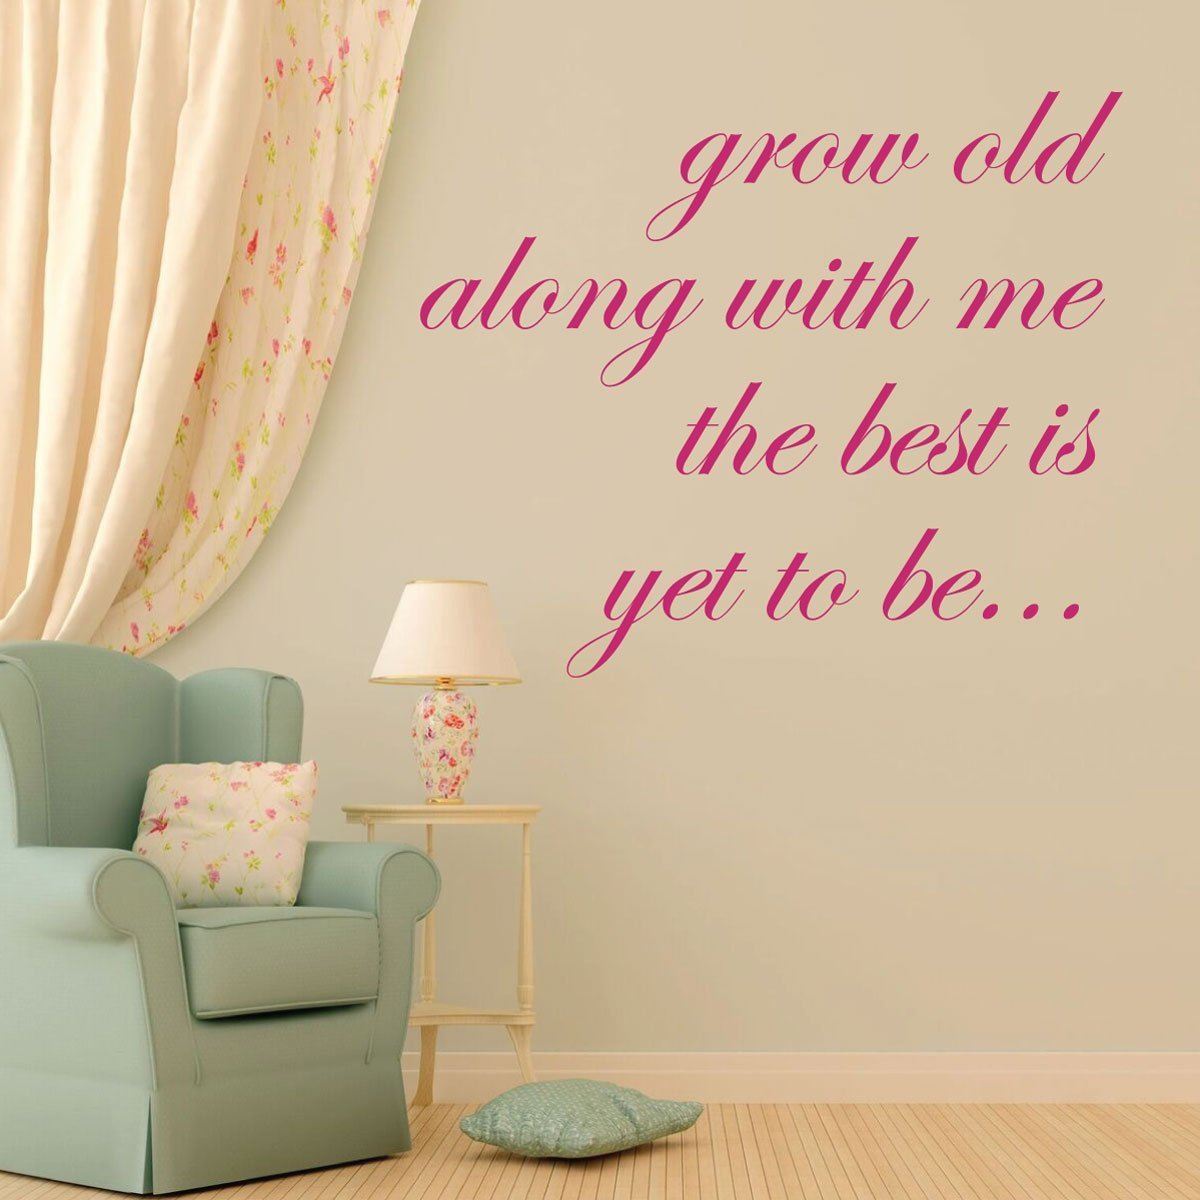 Life Quote Wall Decal - Grow Old Along With Me the Best is Yet To Be... - Love Wall Art